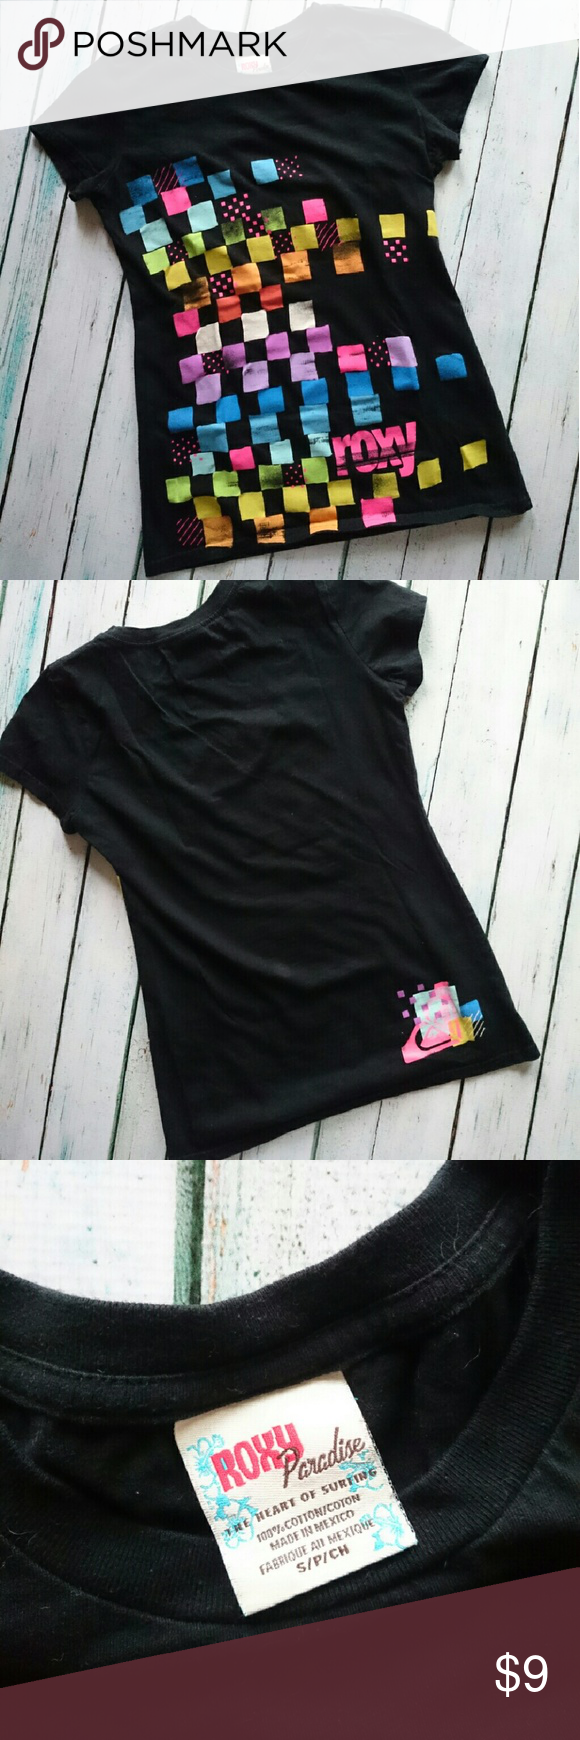 Roxy T-shirt Super cute black, short sleeve tee by Roxy Paradise. Front has bright, colorful squares, while the back has the Roxy logo on the bottom right. Roxy Tops Tees - Short Sleeve